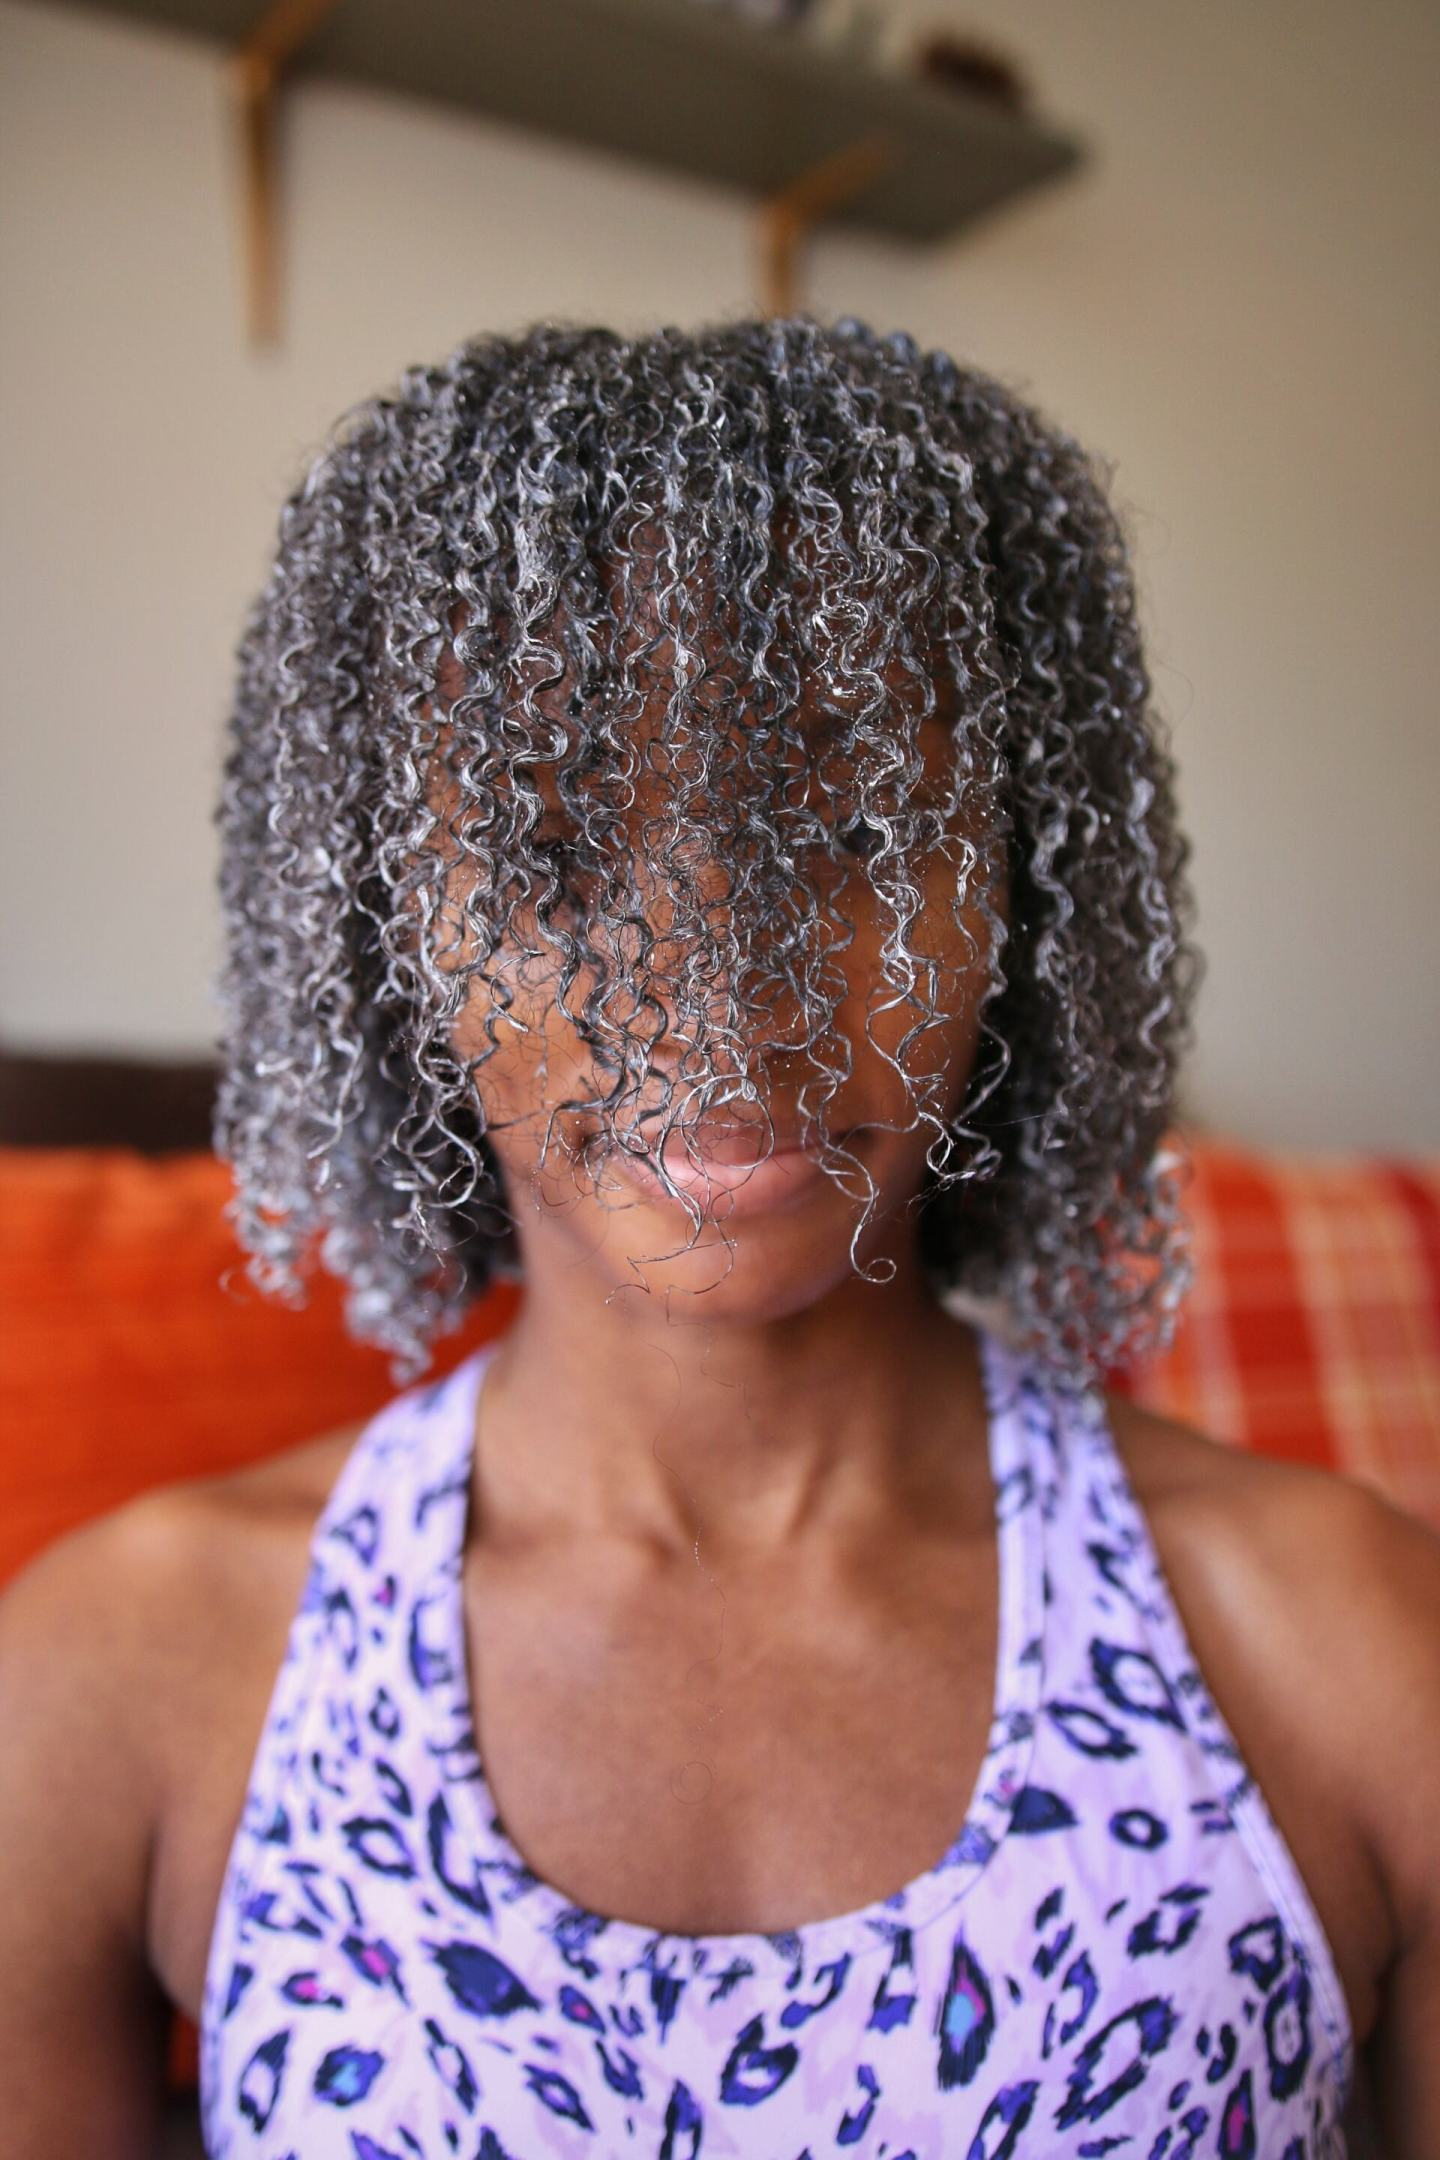 My Wash N Go Routine